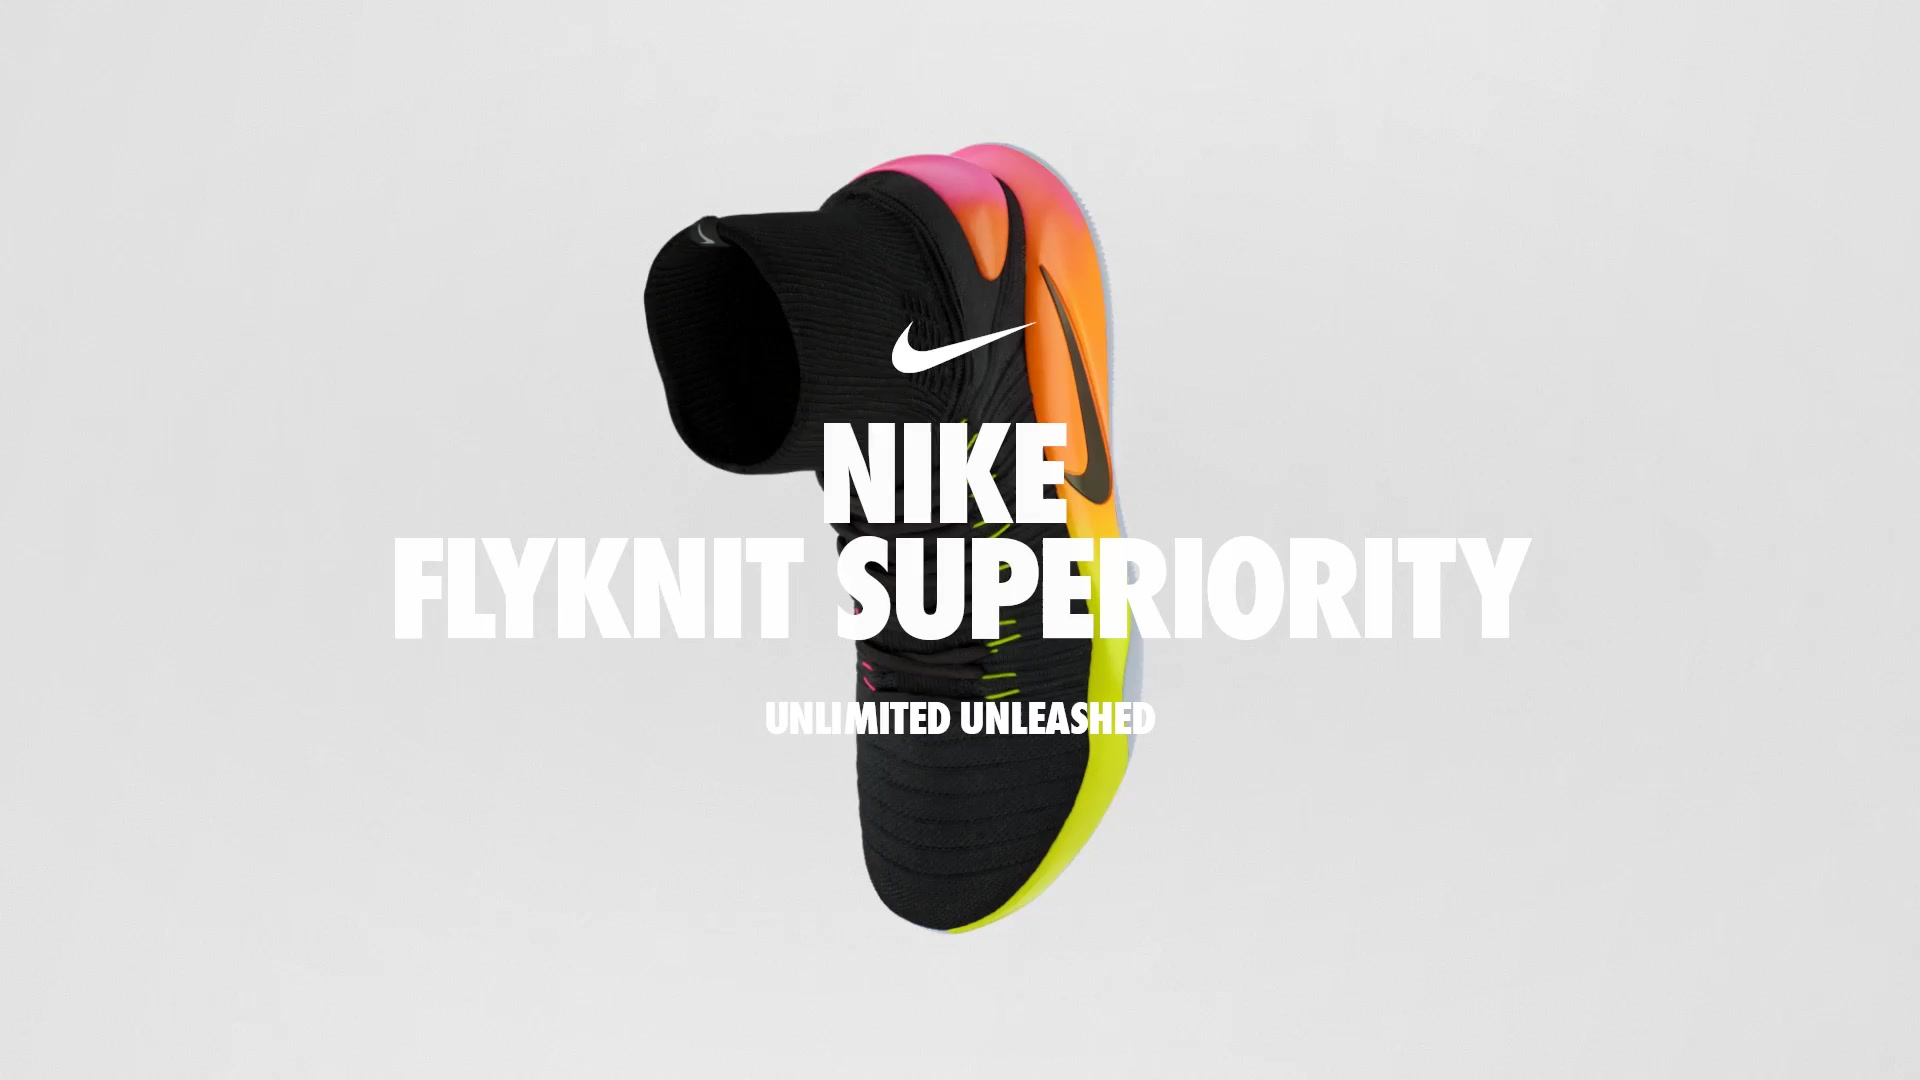 Nike Flyknit 3d shoe cgi design video edit render